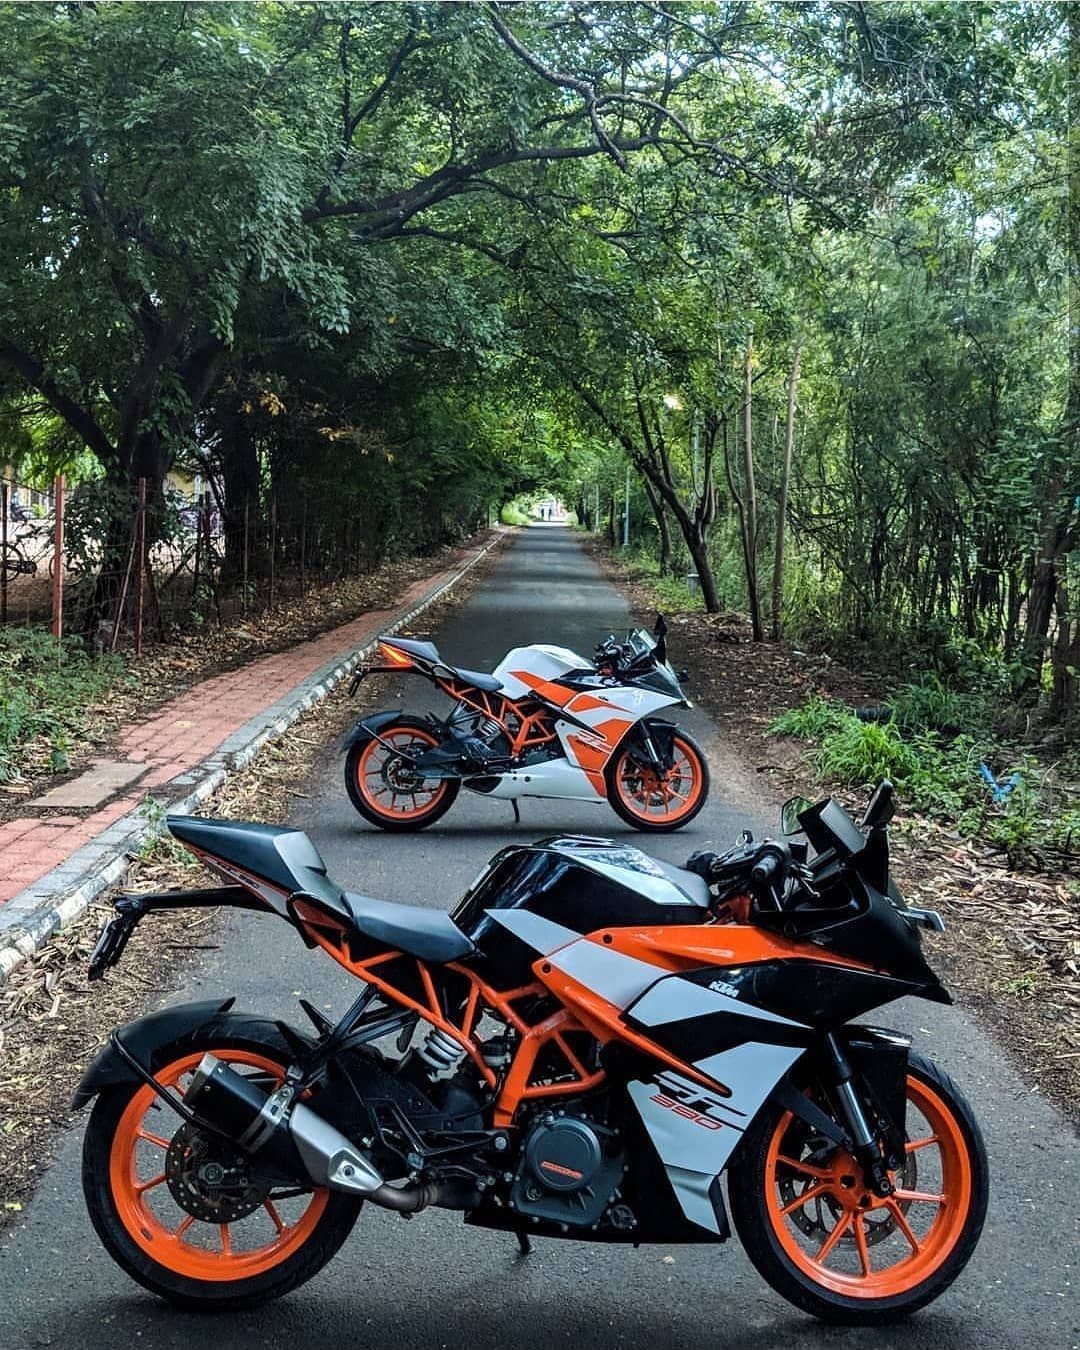 Image May Contain Motorcycle Tree Outdoor And Nature With